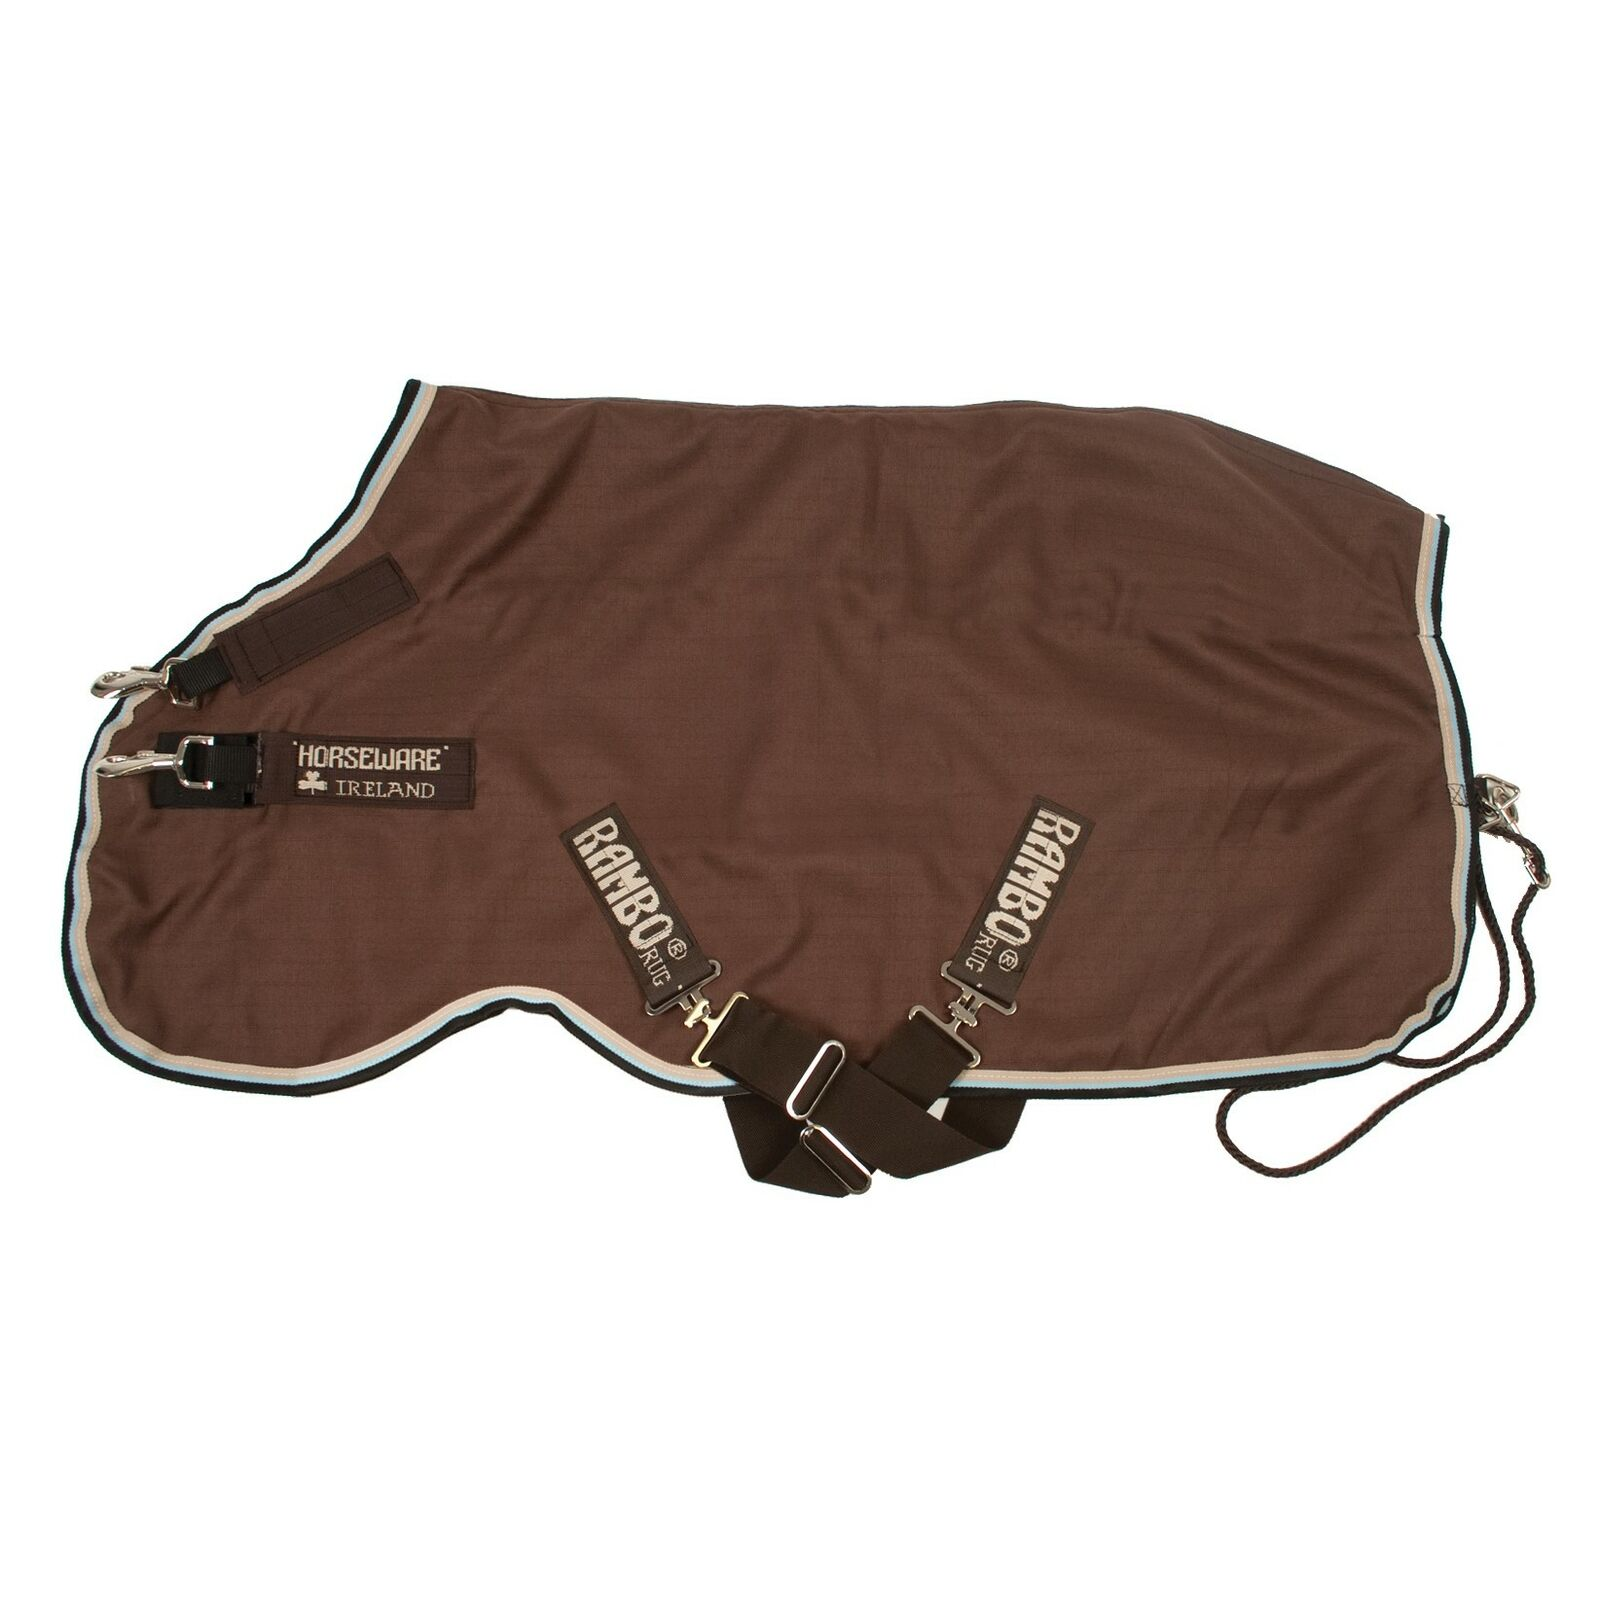 HORSEWARE RAMBO GRAND PRIX HELIX COOLER STABLE TRAVEL RUGS SALE